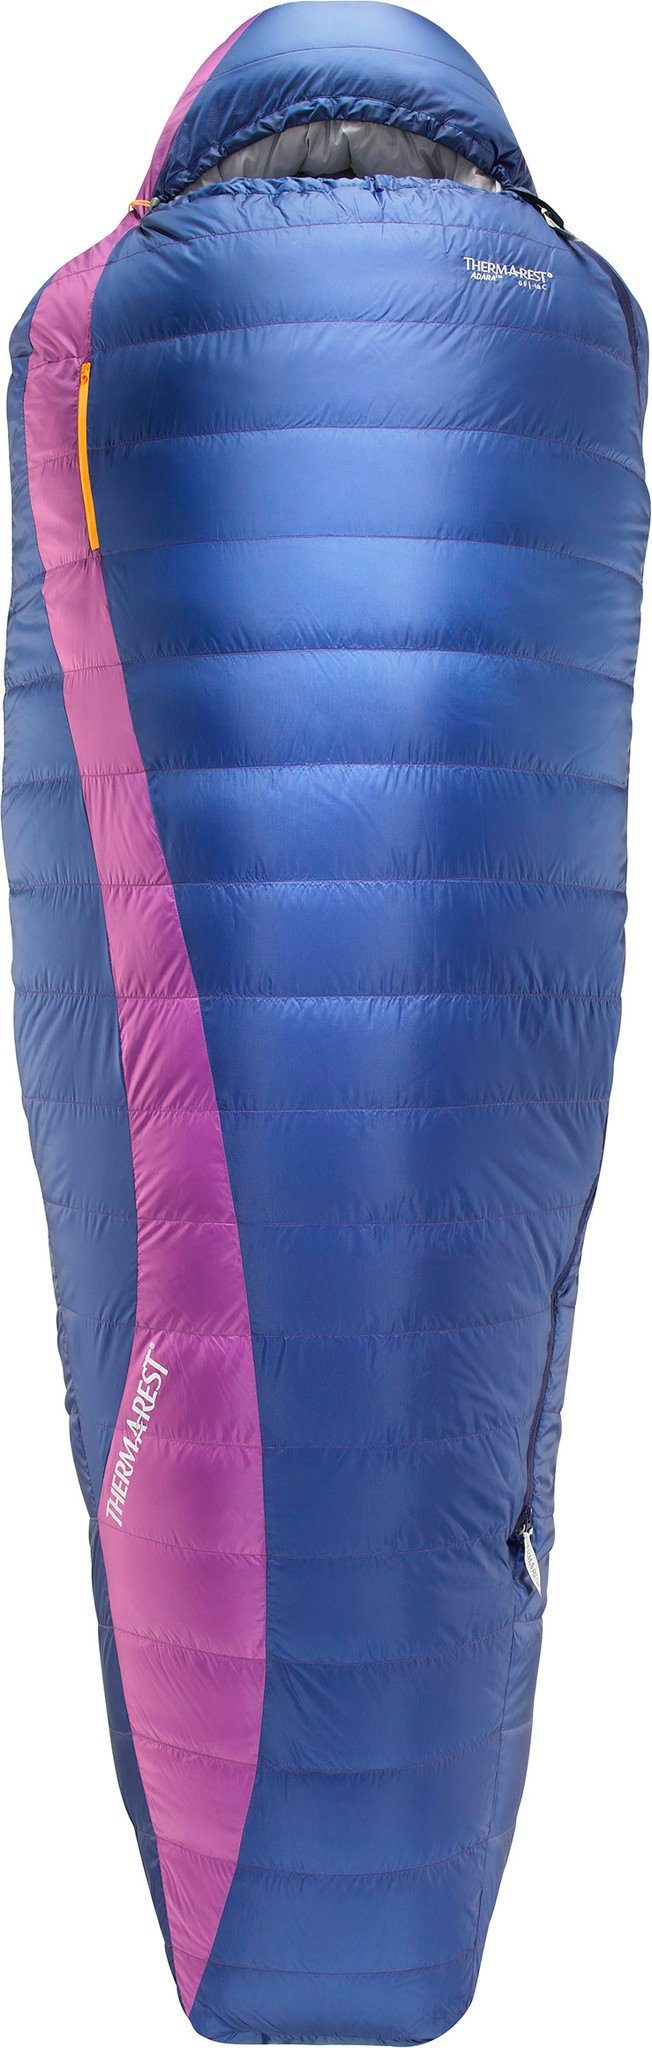 Therm-a-Rest Schlafsack »Adara HD Sleeping Bag Women Regular«